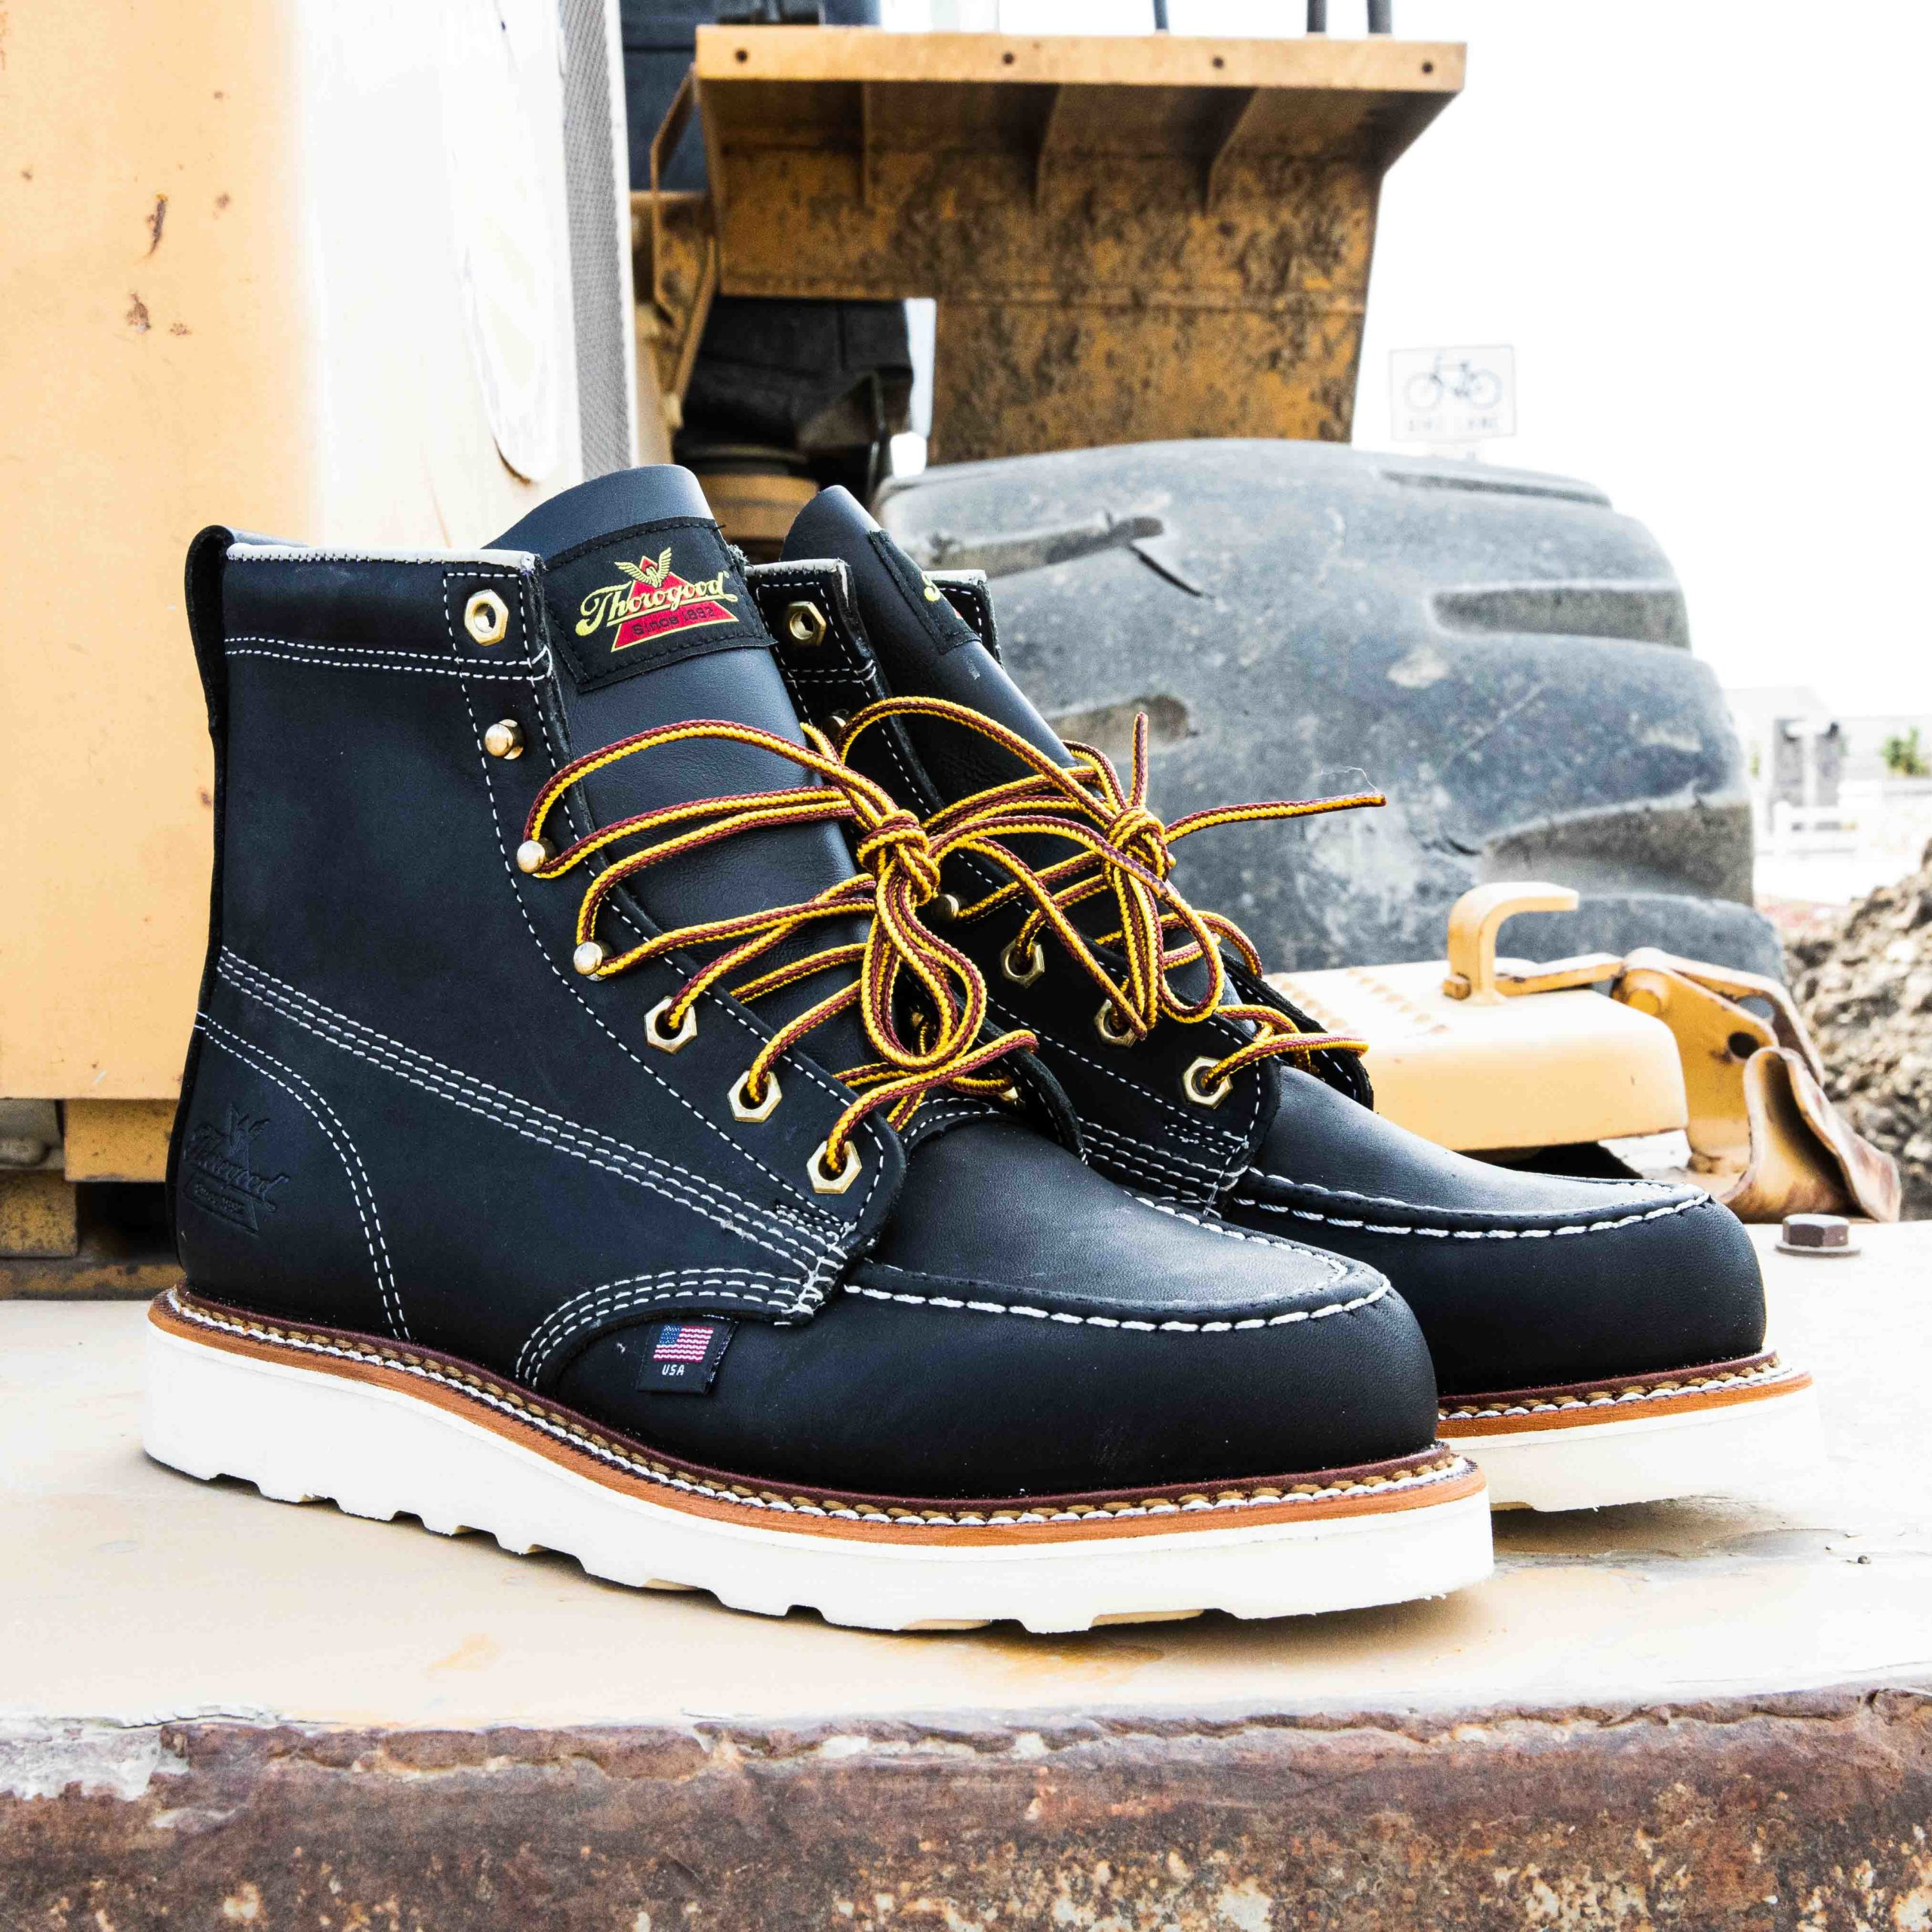 """Thorogood 814-6201 Heritage 6/"""" Moc Toe Boot Soft Toe Work Boot, Made in USA"""